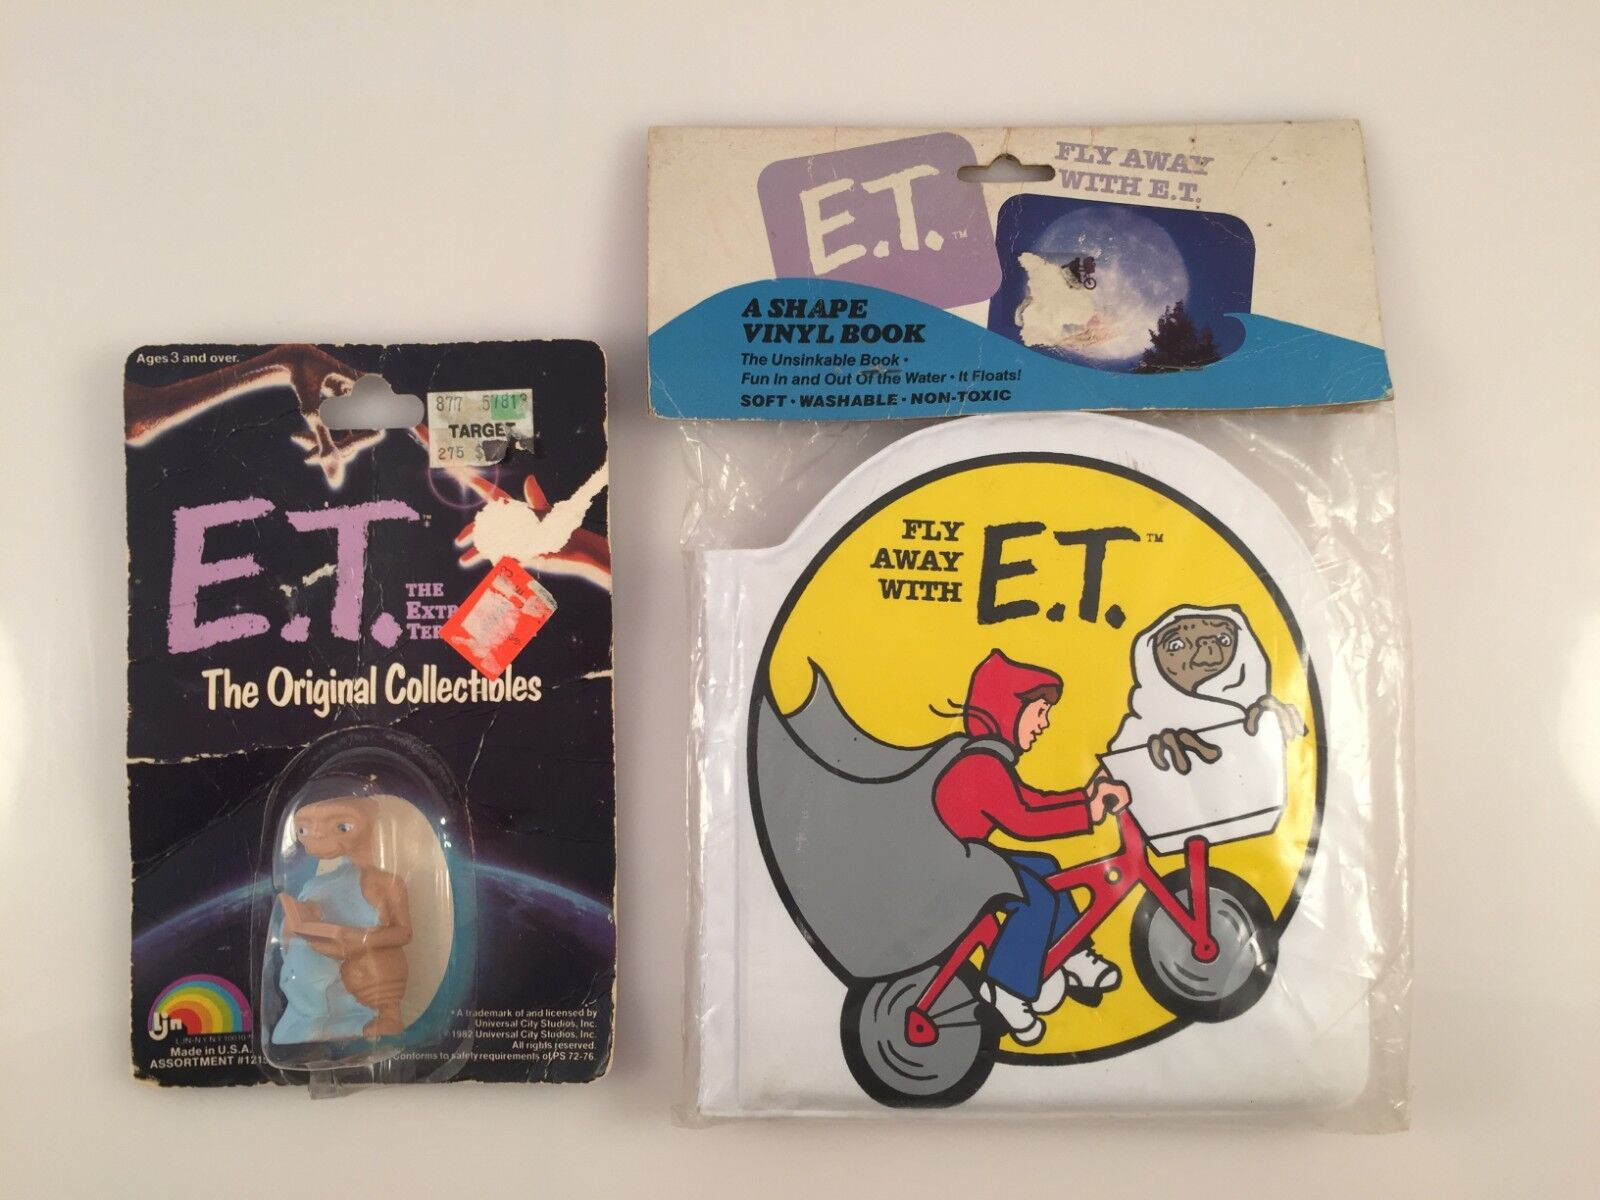 VINTAGE E.T. THE EXTRA TERRESTRIAL ACTION FIGURE AND RARE BOOK — NEW, SEALED